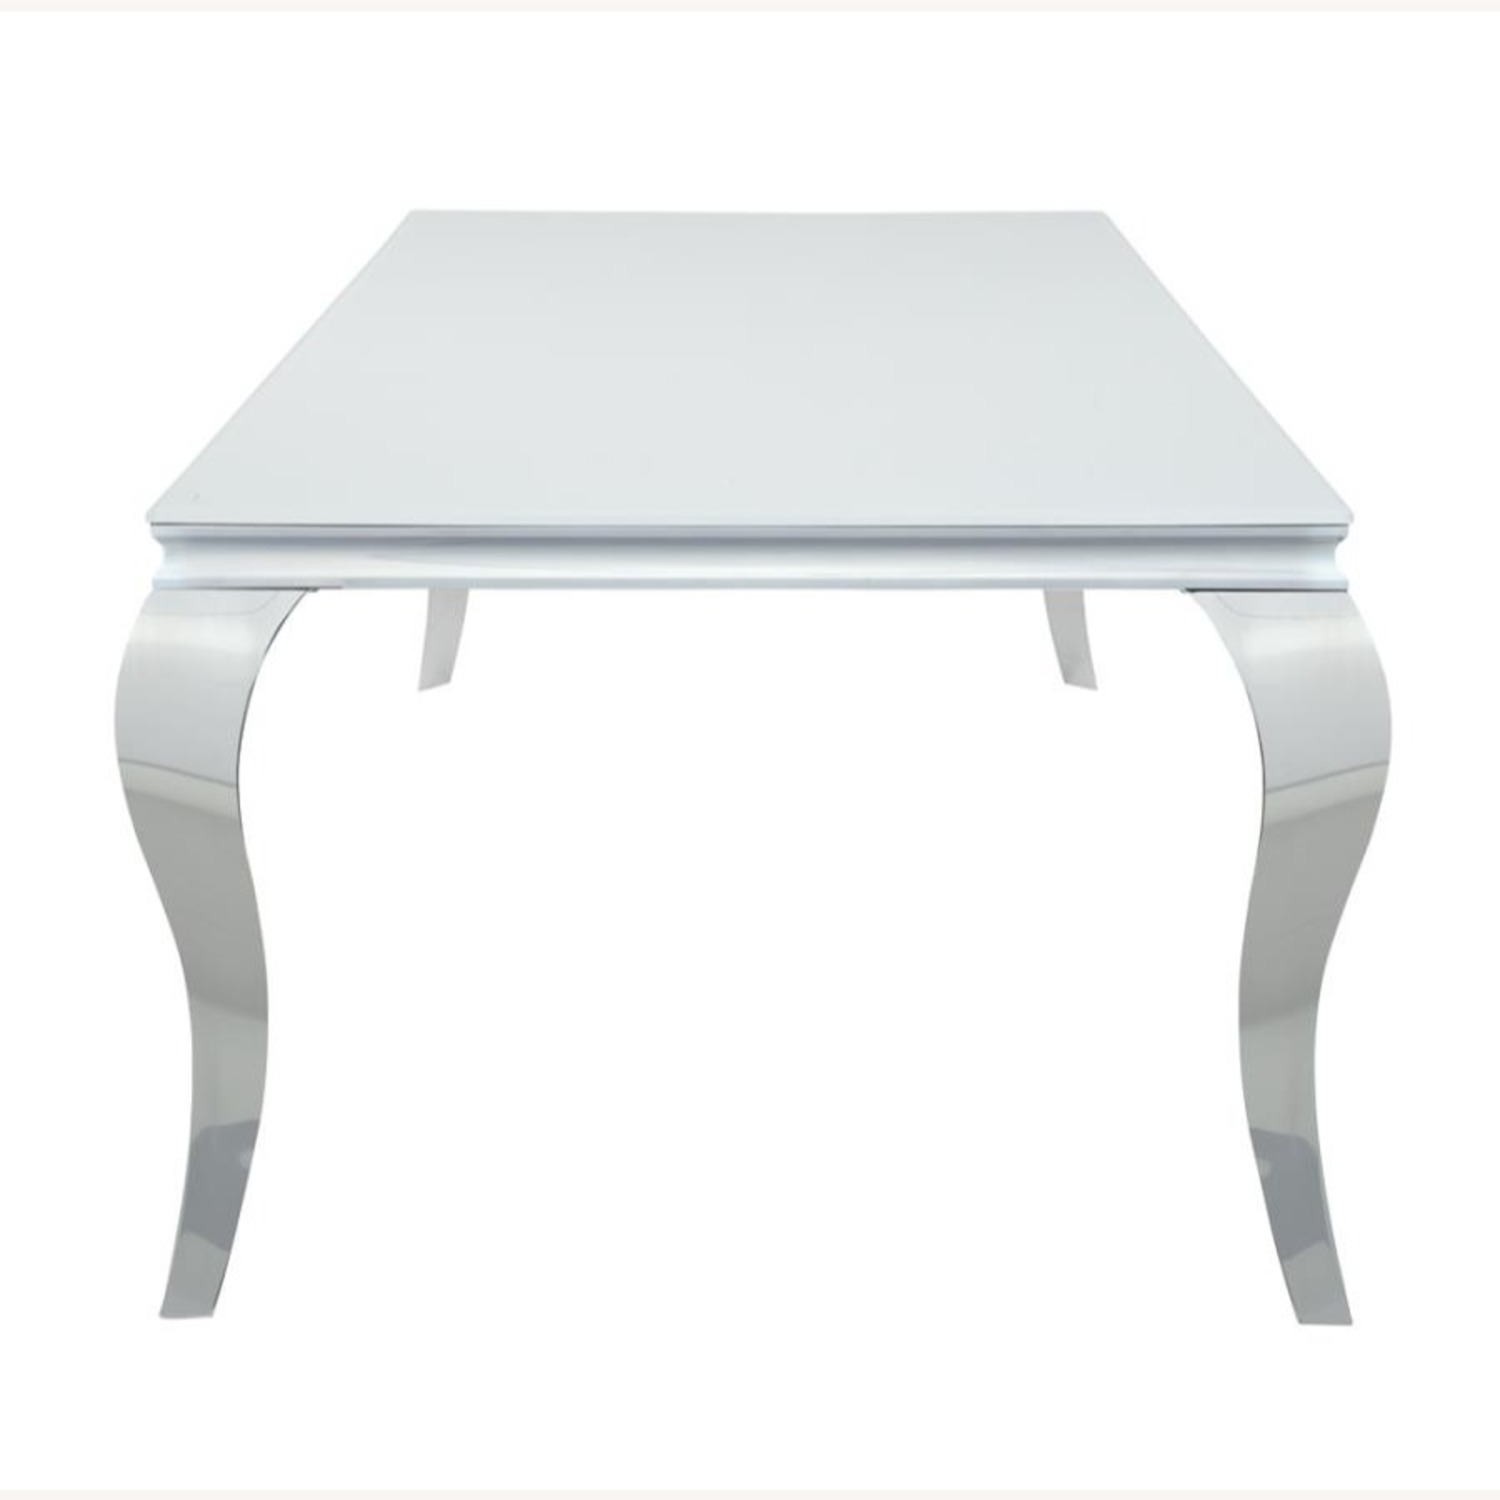 Dining Table In Chrome Base Finish W/ White Top - image-2